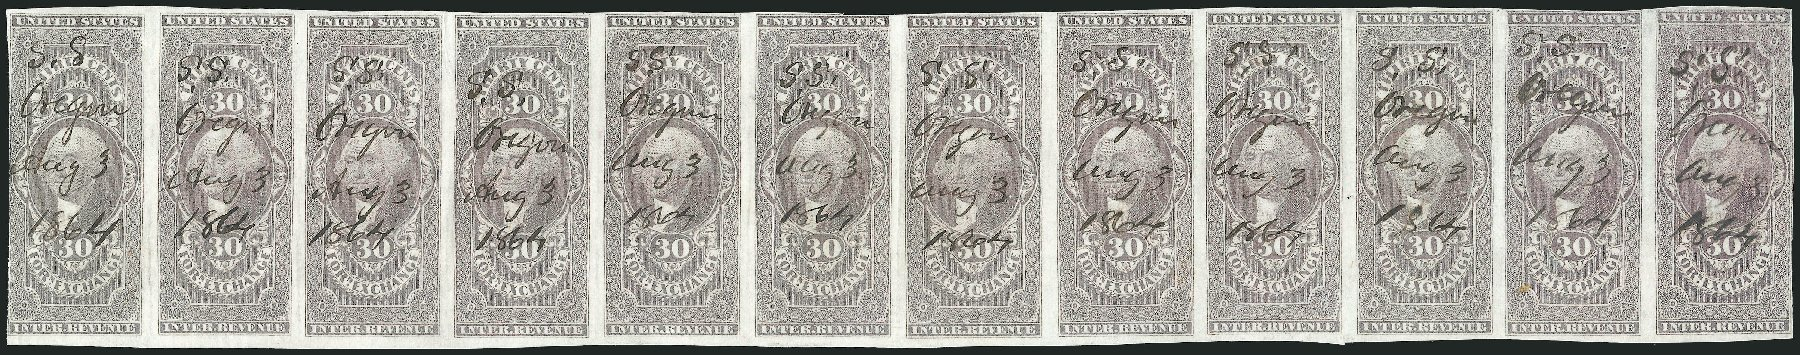 US Stamps Price Scott #R51: 1862 30c Revenue Foreign Exchange. Robert Siegel Auction Galleries, Dec 2014, Sale 1089, Lot 341